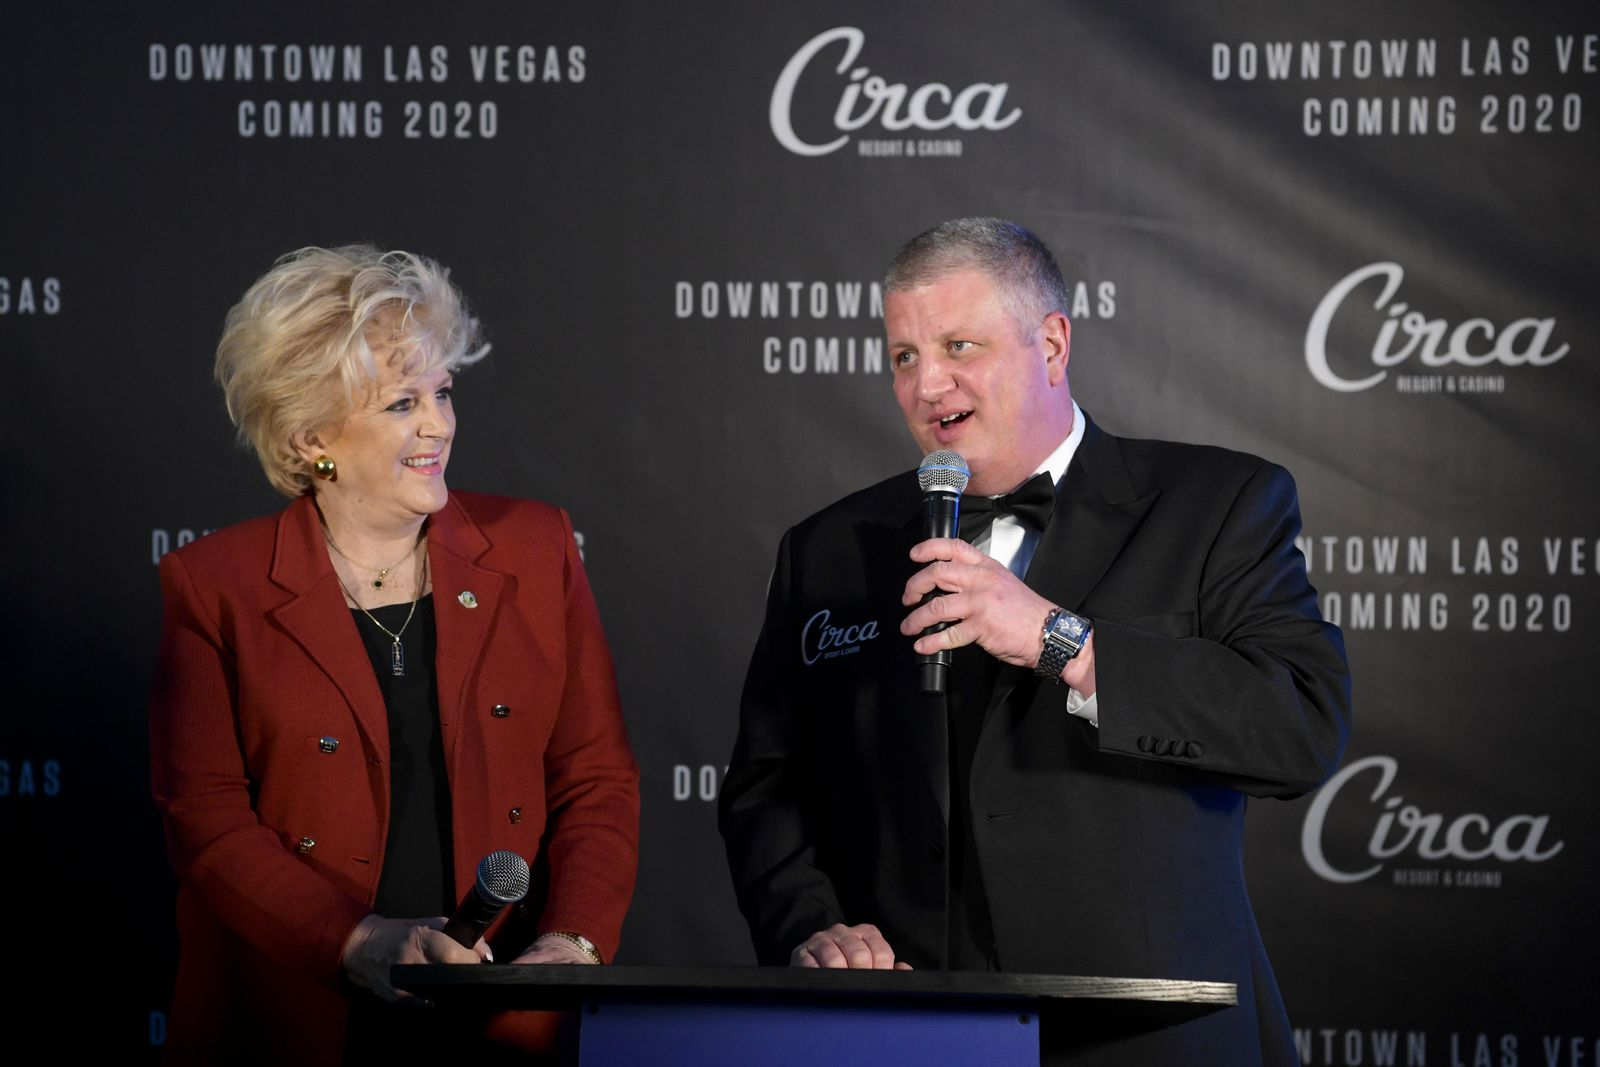 Las Vegas Mayor Carolyn Goodman joins Derek Stevens as he speaks during the unveiling of his new project for Fremont Street, Circa Resort & Casino, Thursday, Jan 10, 2019, at the Downtown Las Vegas Events Center. (Sam Morris/Las Vegas News Bureau)